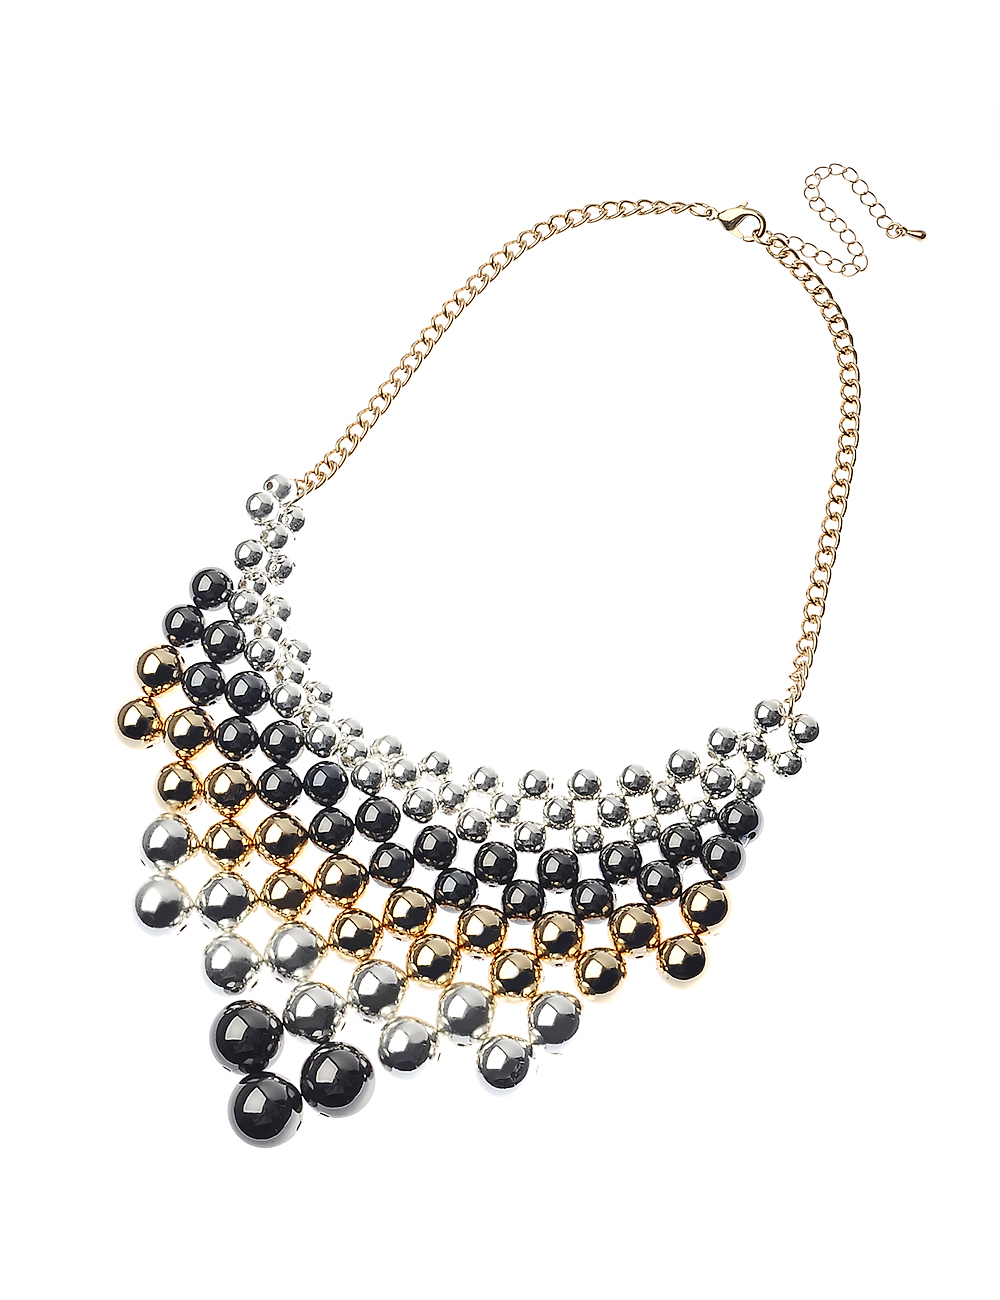 3 tone metal beads stetament necklace